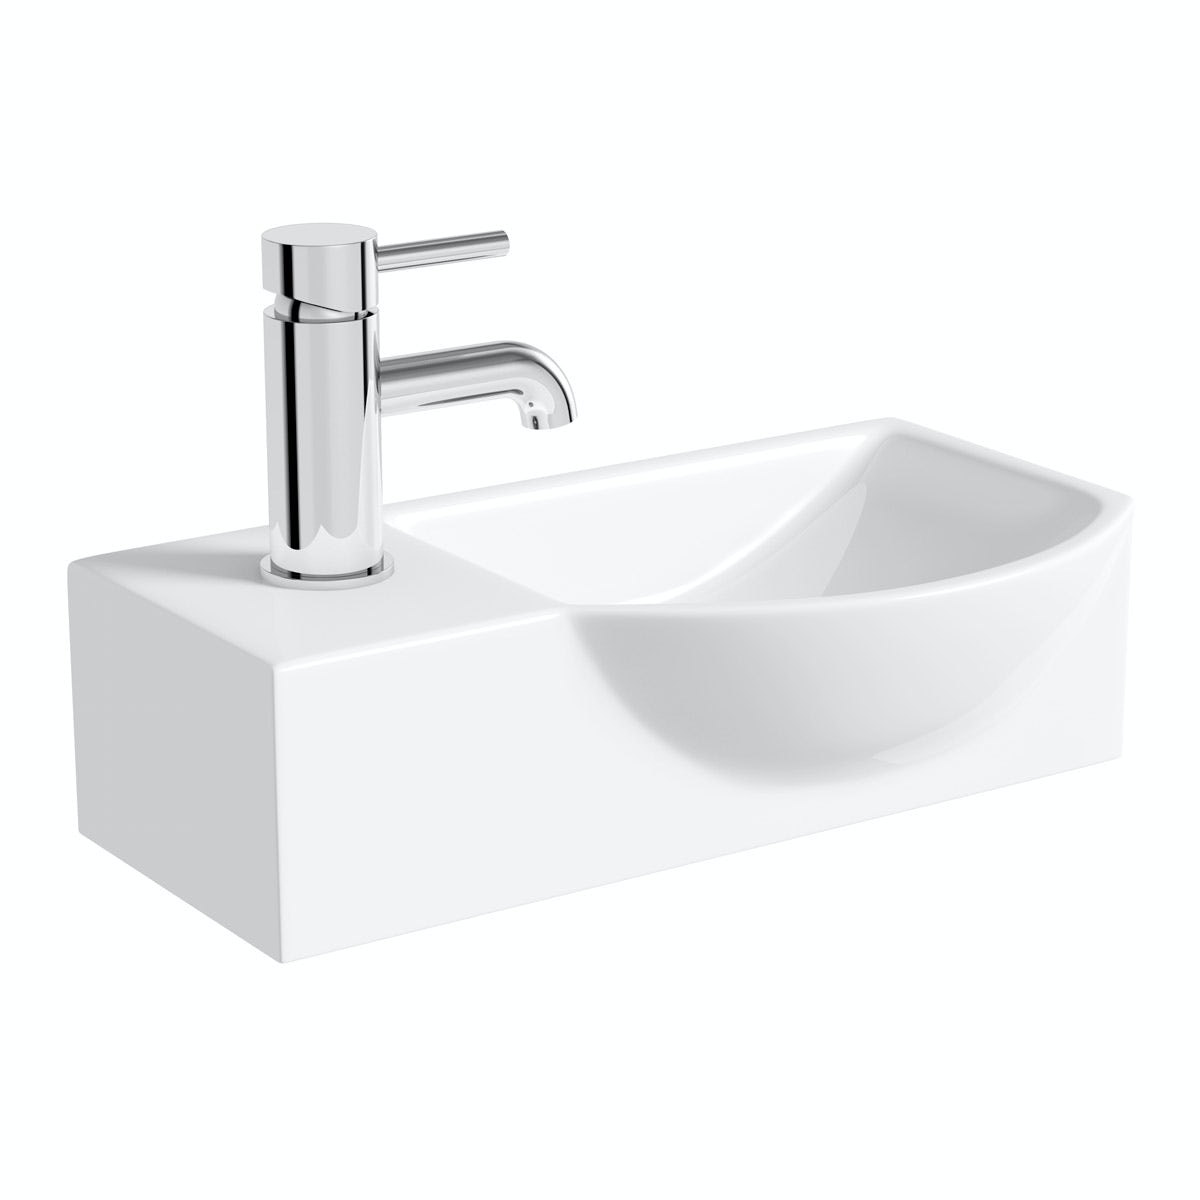 Lugano wall hung basin 410mm